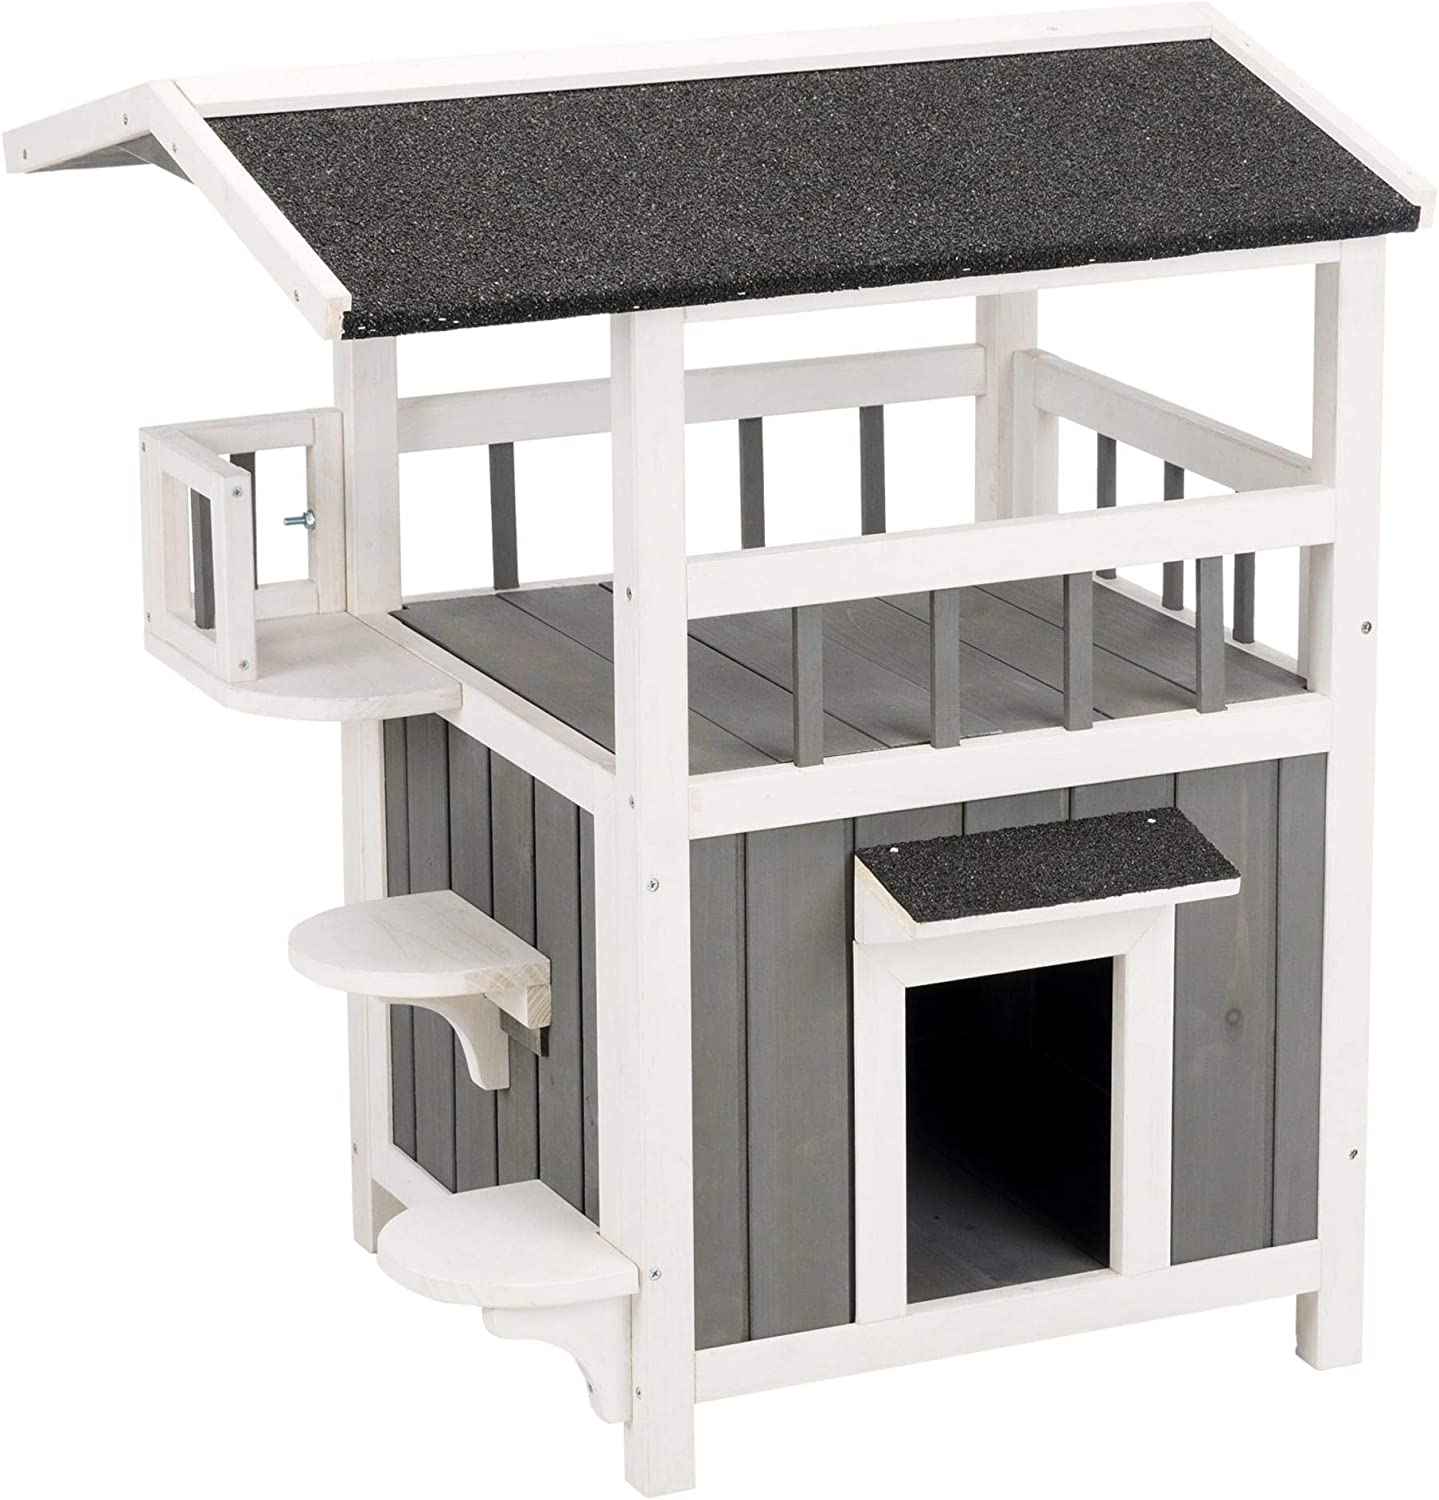 Trixie Pet Products 44116 Natura Wooden Pet Home With Shade 64 5 X 55 8 X Gray Pet Supplies